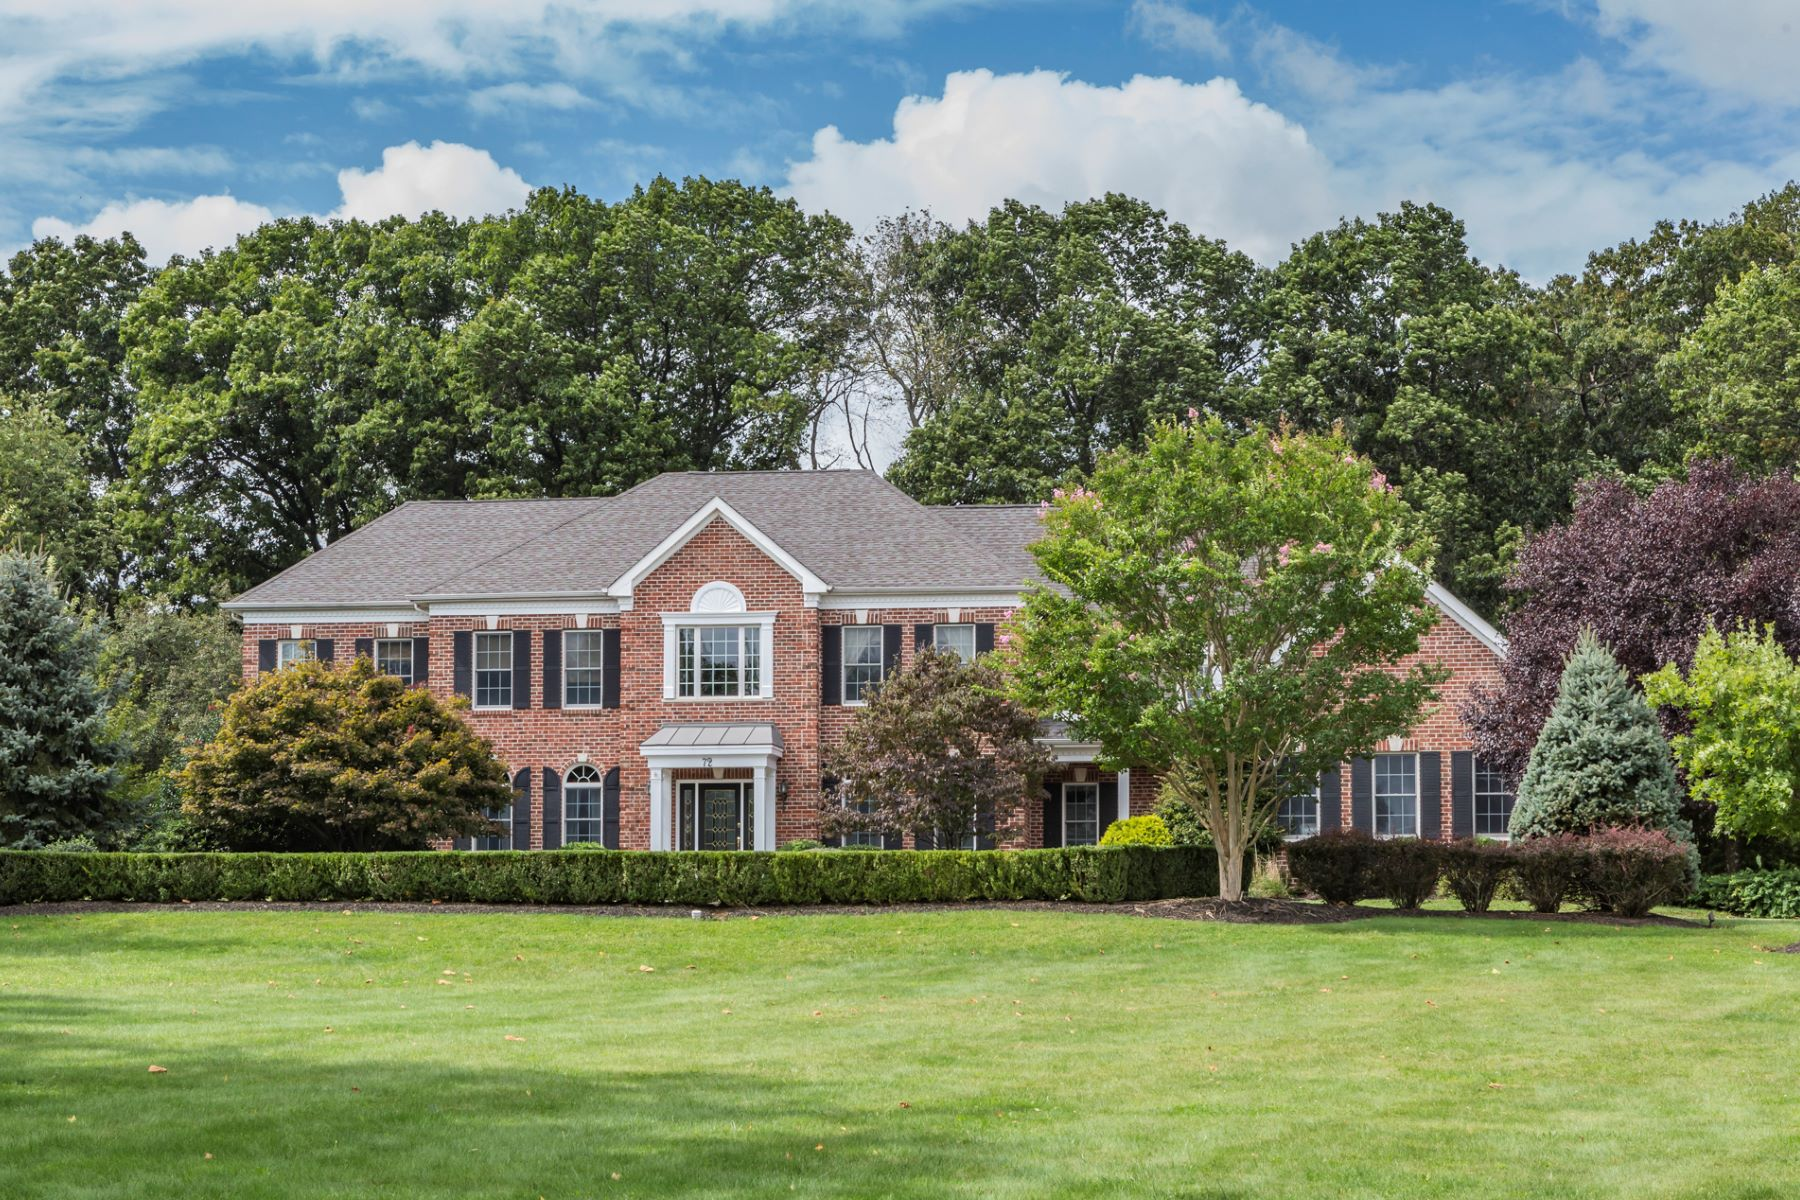 Single Family Home for Sale at Distinguished Craftsmanship Is On Display - Montgomery Township 72 Concord Lane, Skillman, New Jersey 08558 United StatesMunicipality: Montgomery Township